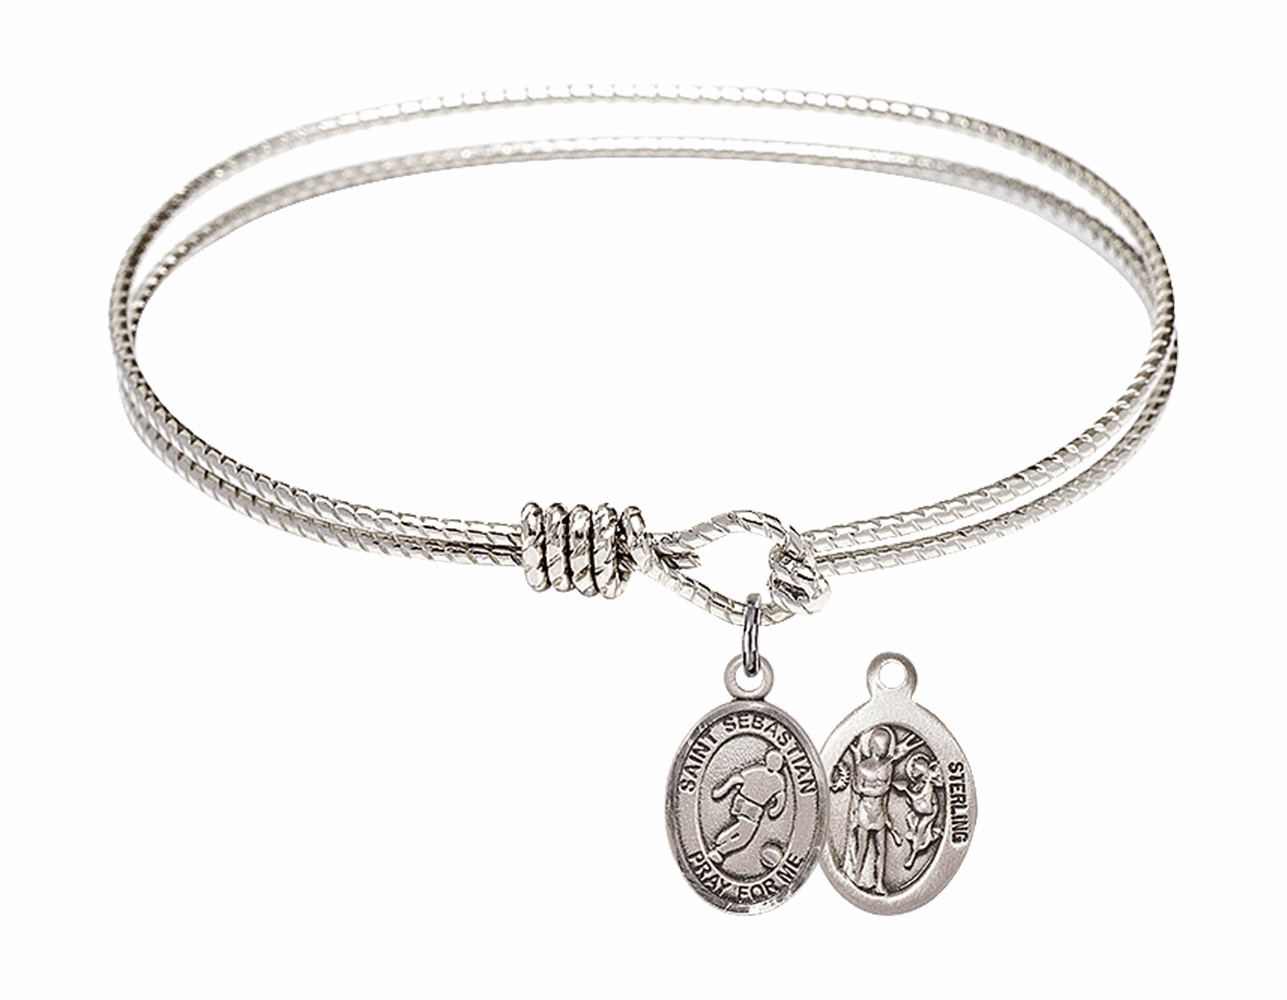 Twist Round Eye Hook St Sebastian Soccer Bangle Charm Bracelet by Bliss